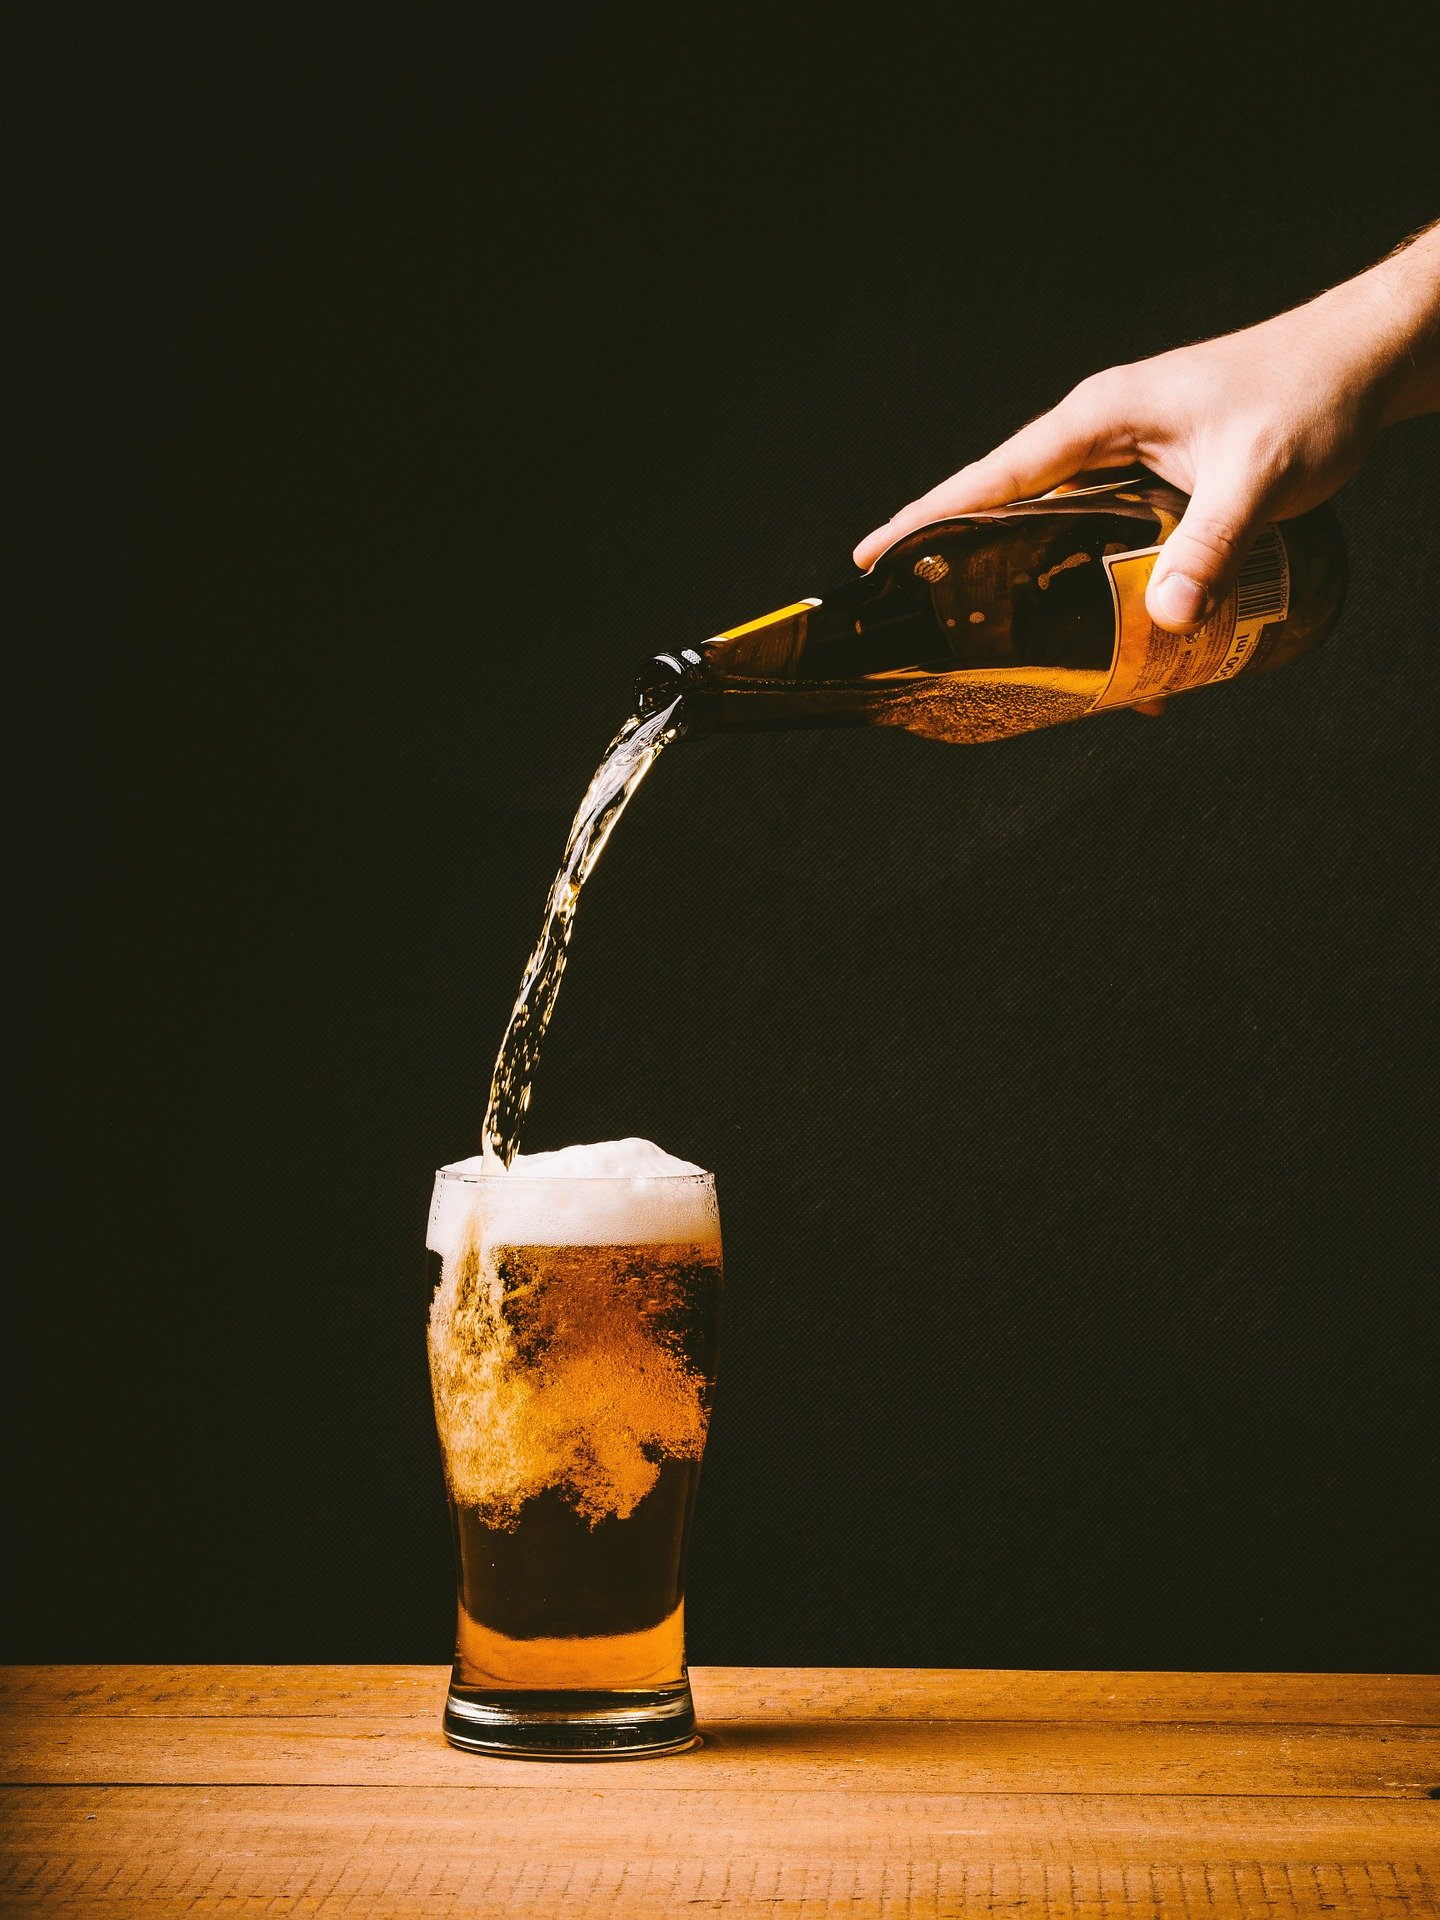 Pictured - A man pouring a glass of beer   Source: Pixabay